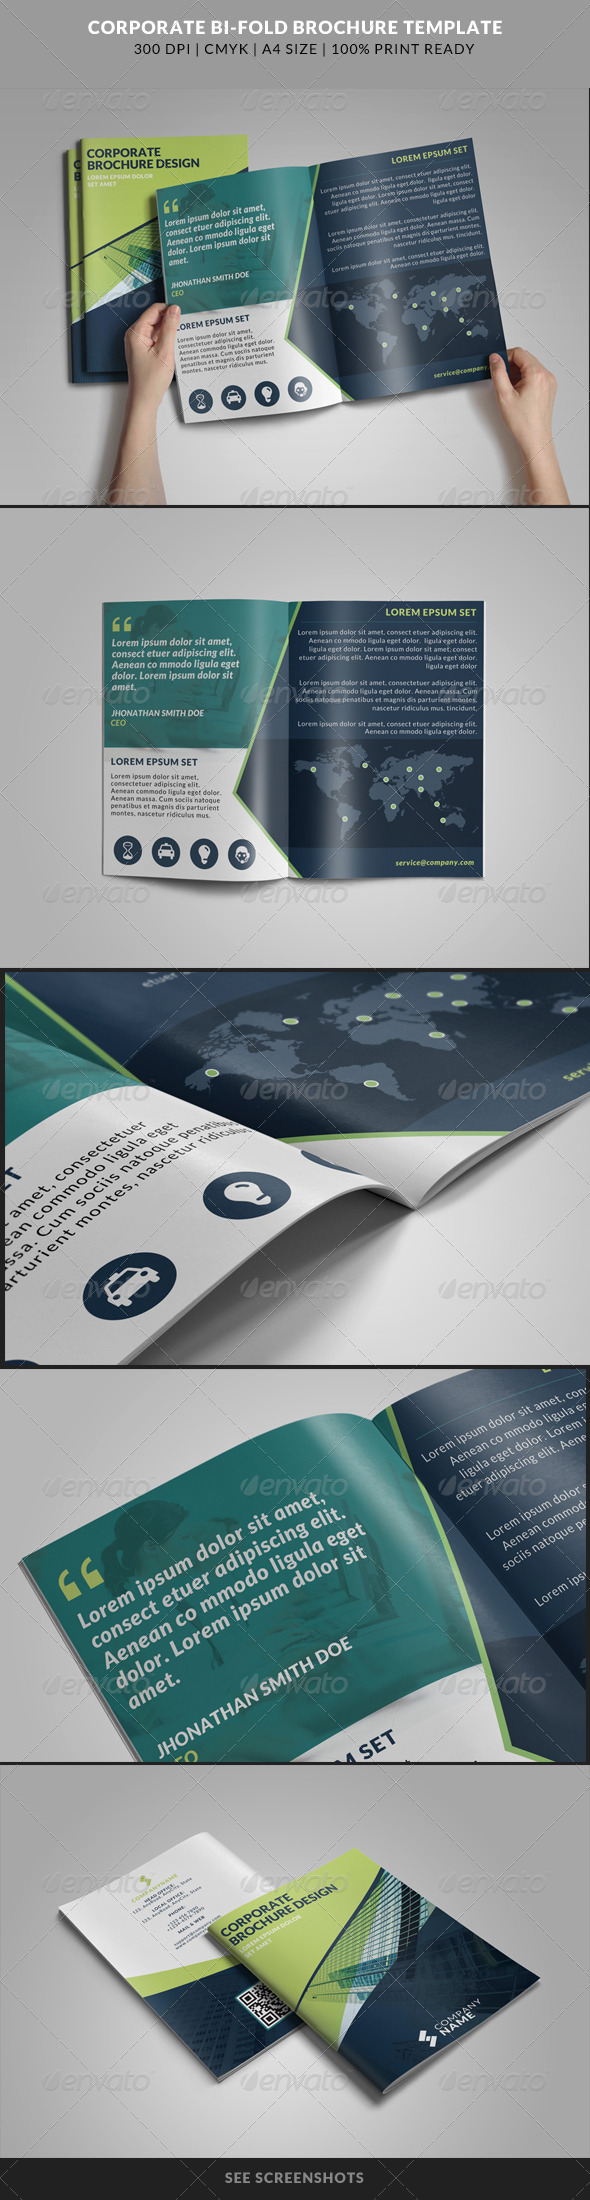 GraphicRiver Corporate Bi-Fold Brochures Template 12 8335960